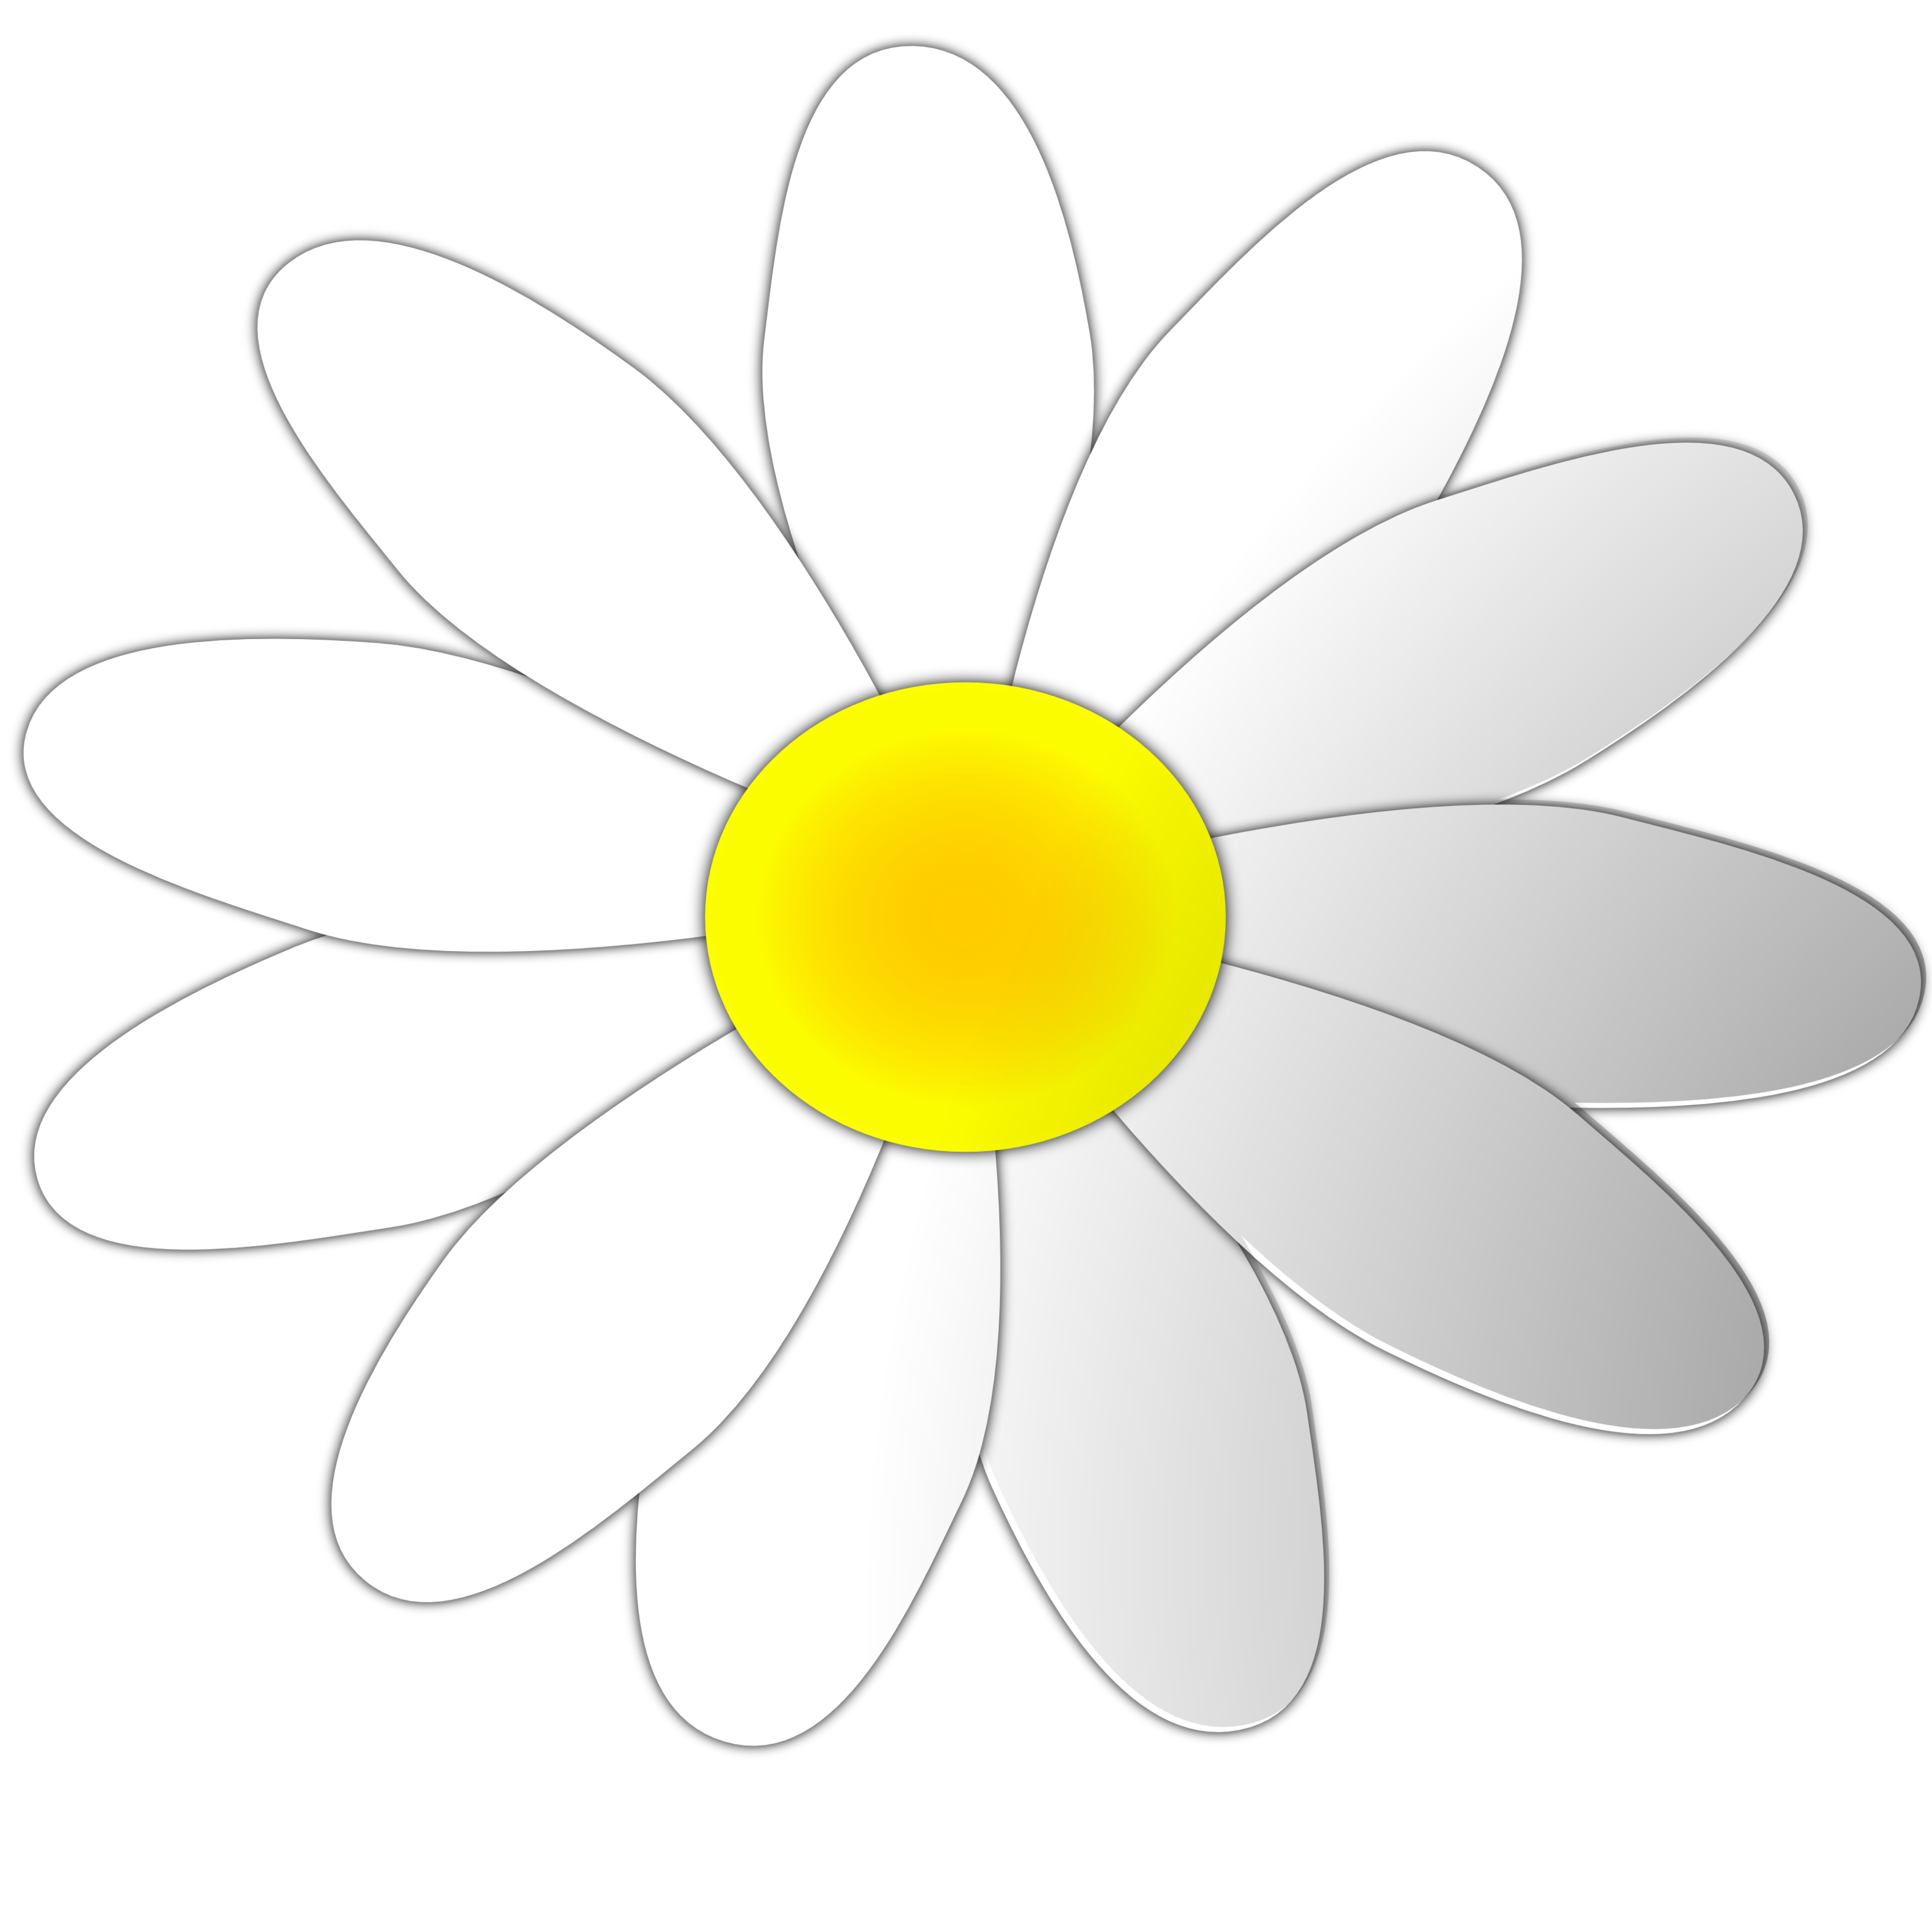 Daisy clipart #5, Download drawings